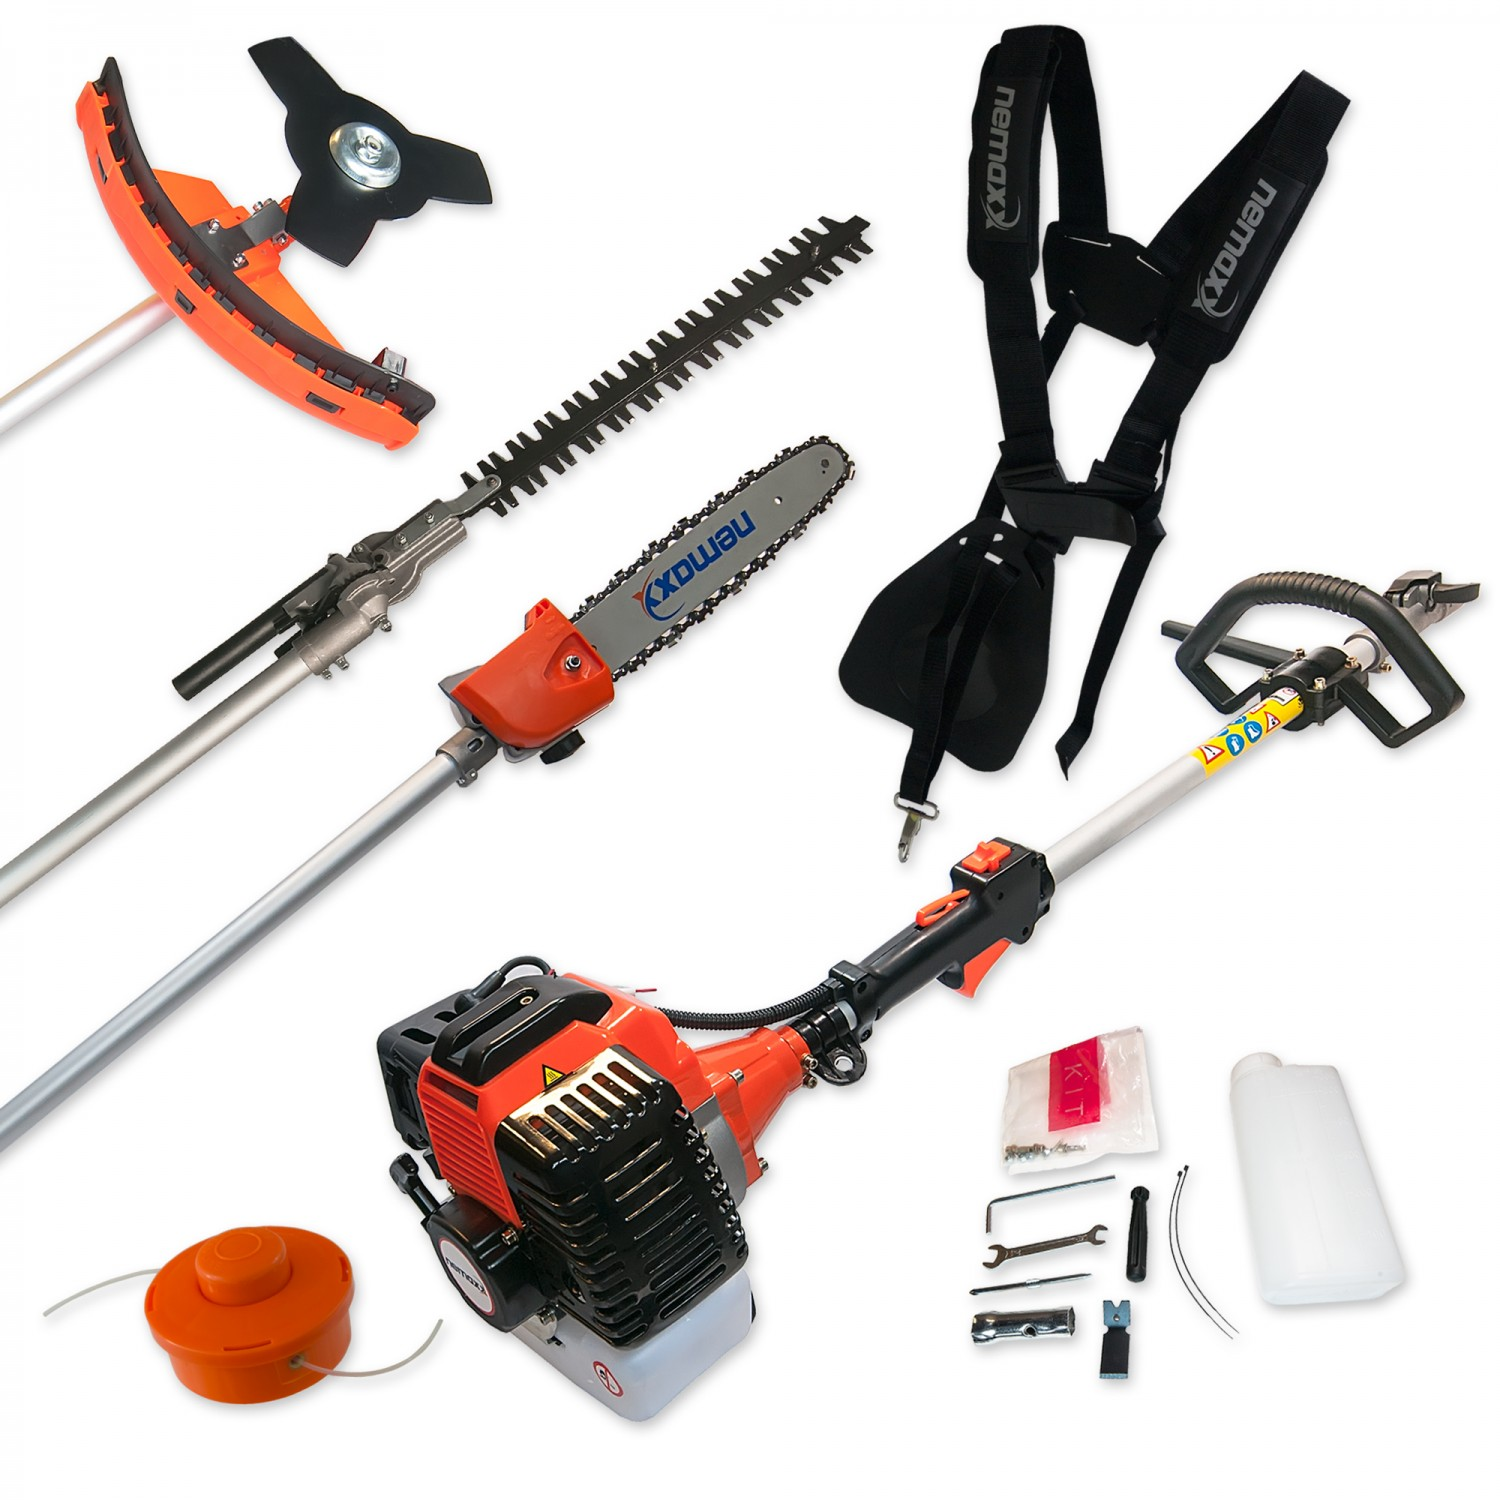 52cc petrol brushcutter 4in1 gardening multi tool set for Garden cutting tool set